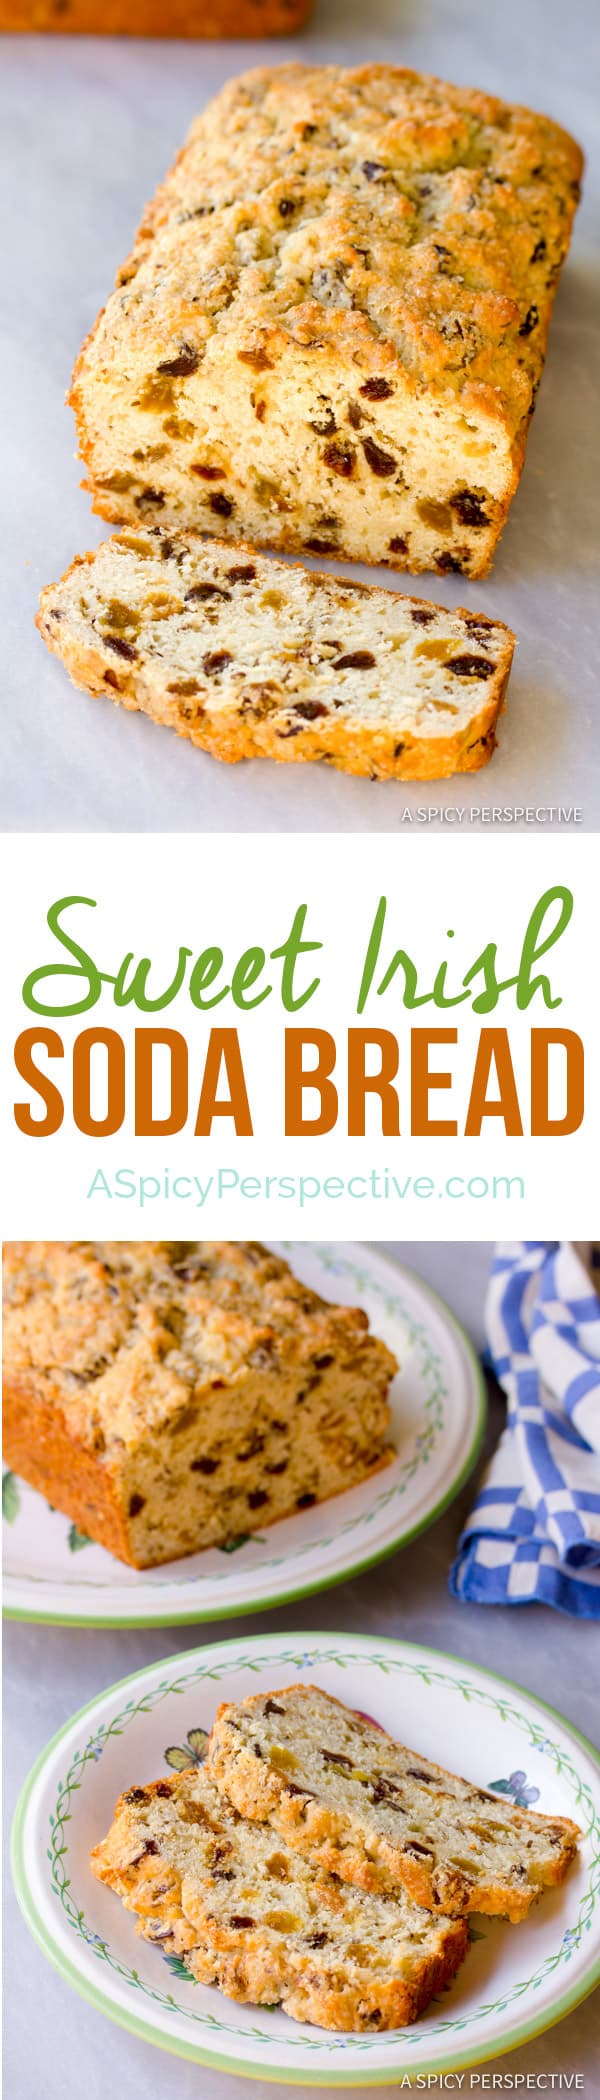 Sweet Irish Soda Bread | ASpicyPerspective.com